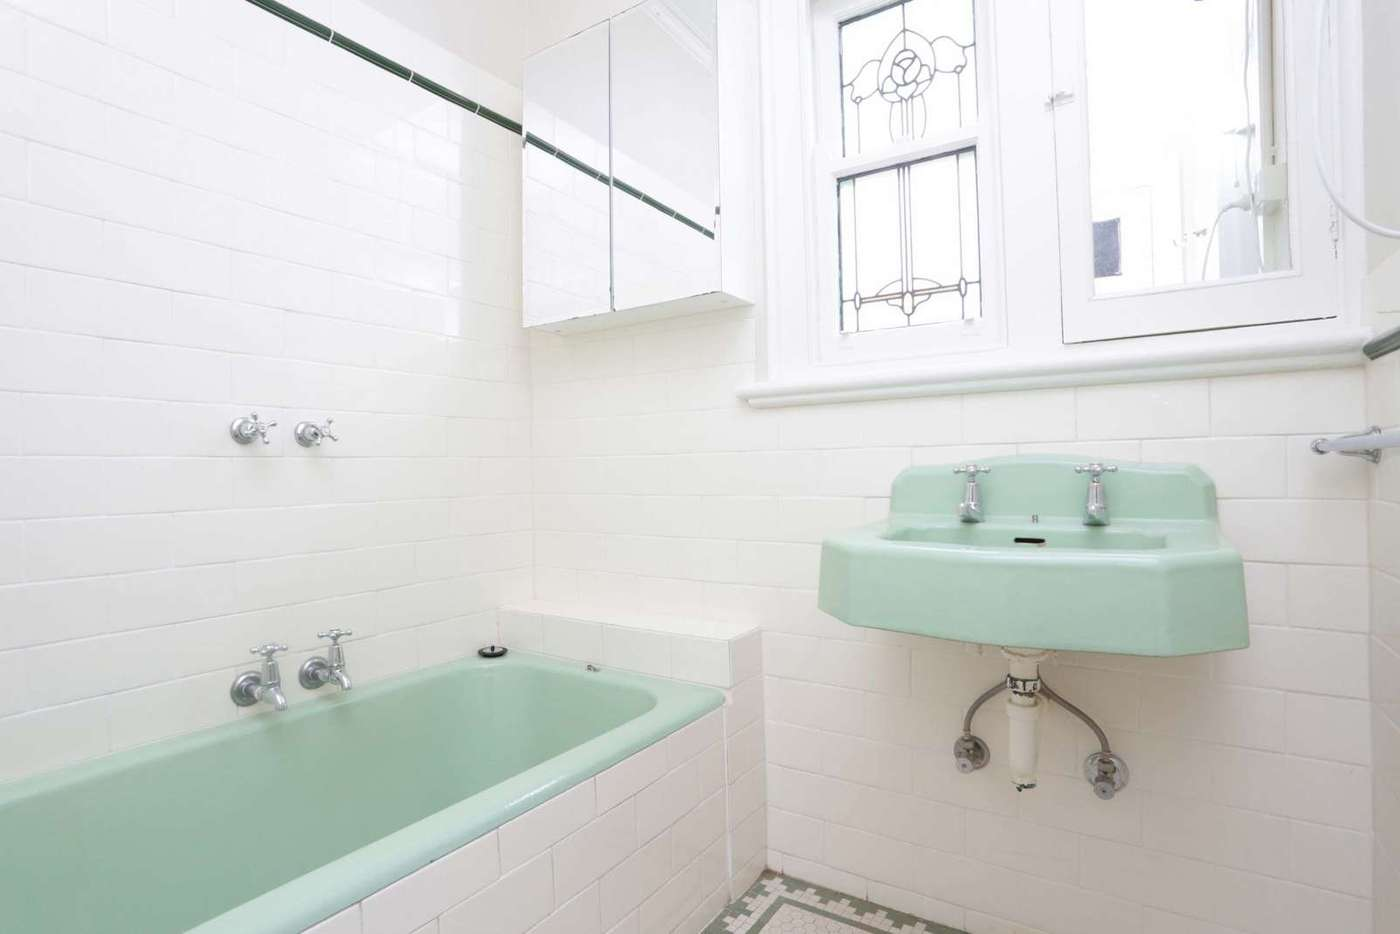 Sixth view of Homely apartment listing, 4/123 Ruskin Street, Elwood VIC 3184